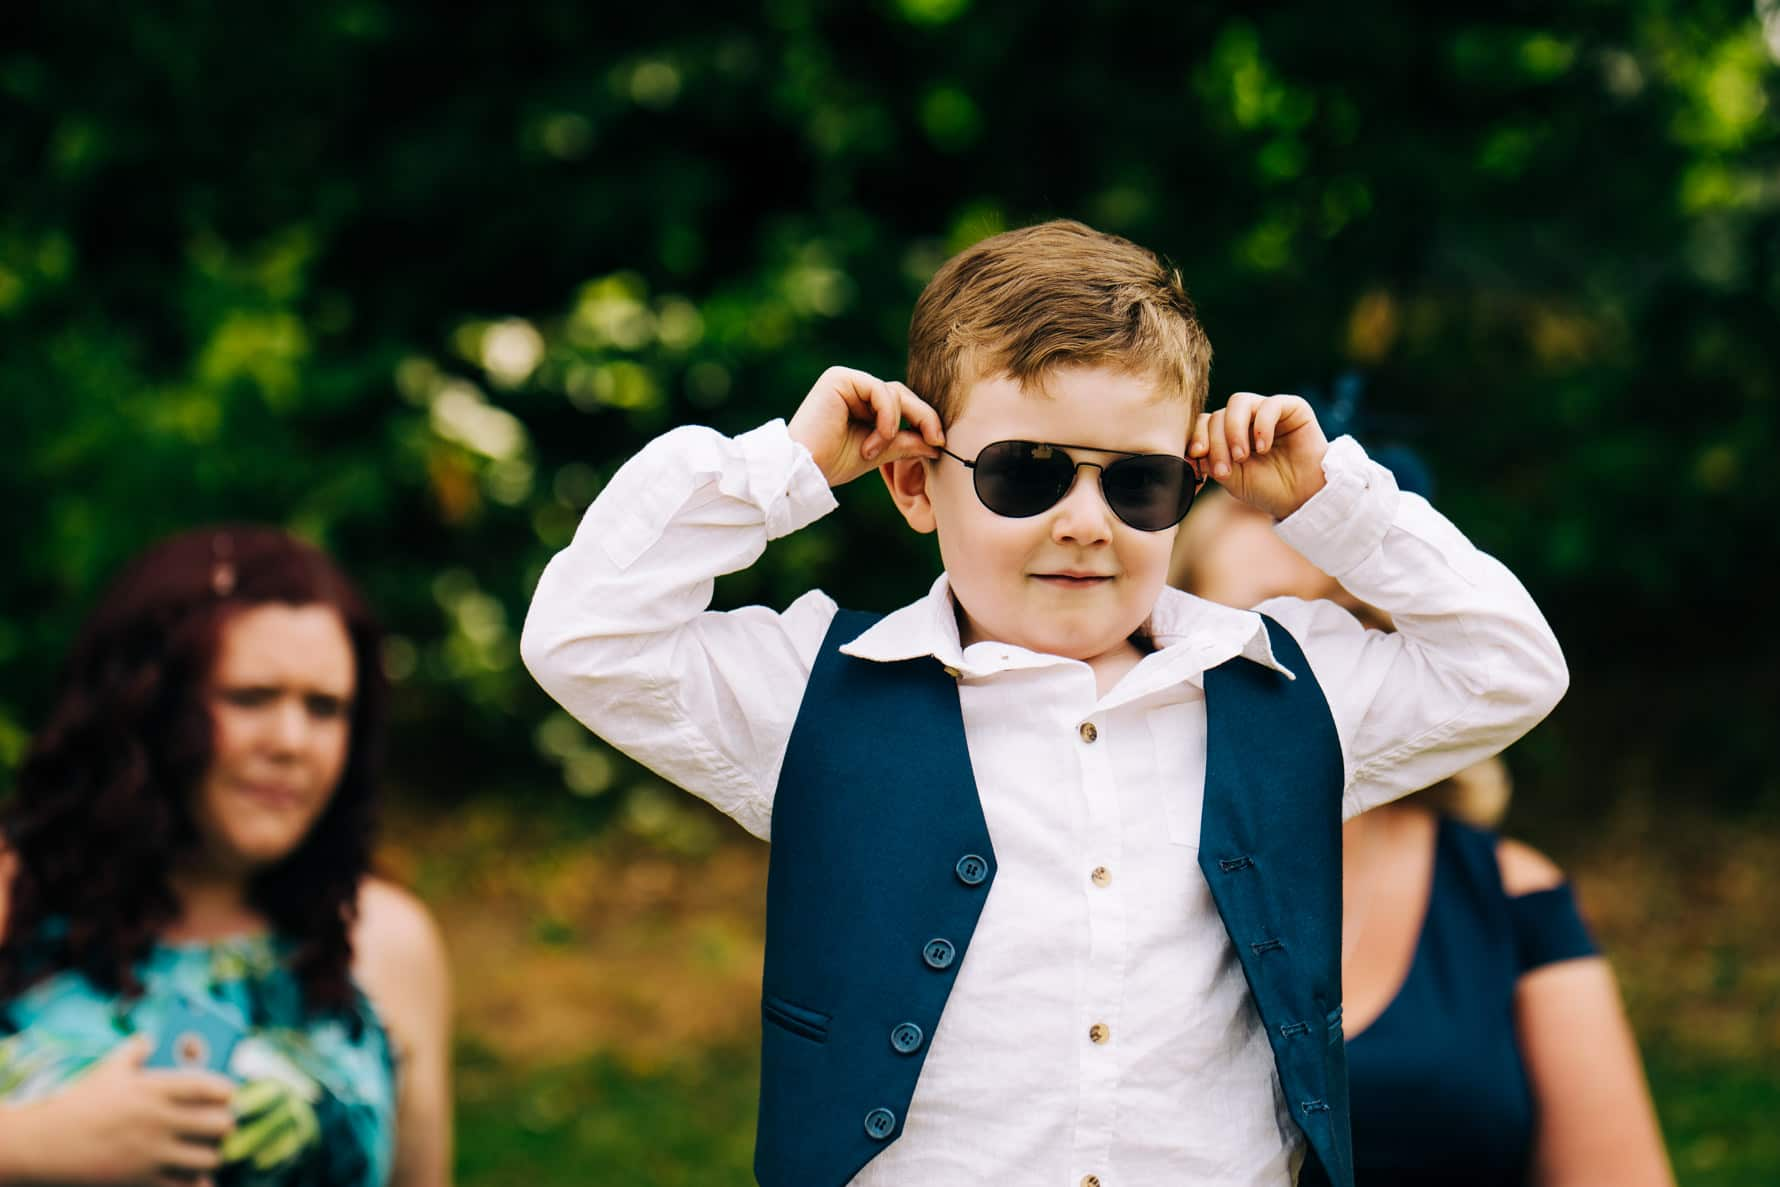 A kid at a wedding wearing sunglasses looking cool